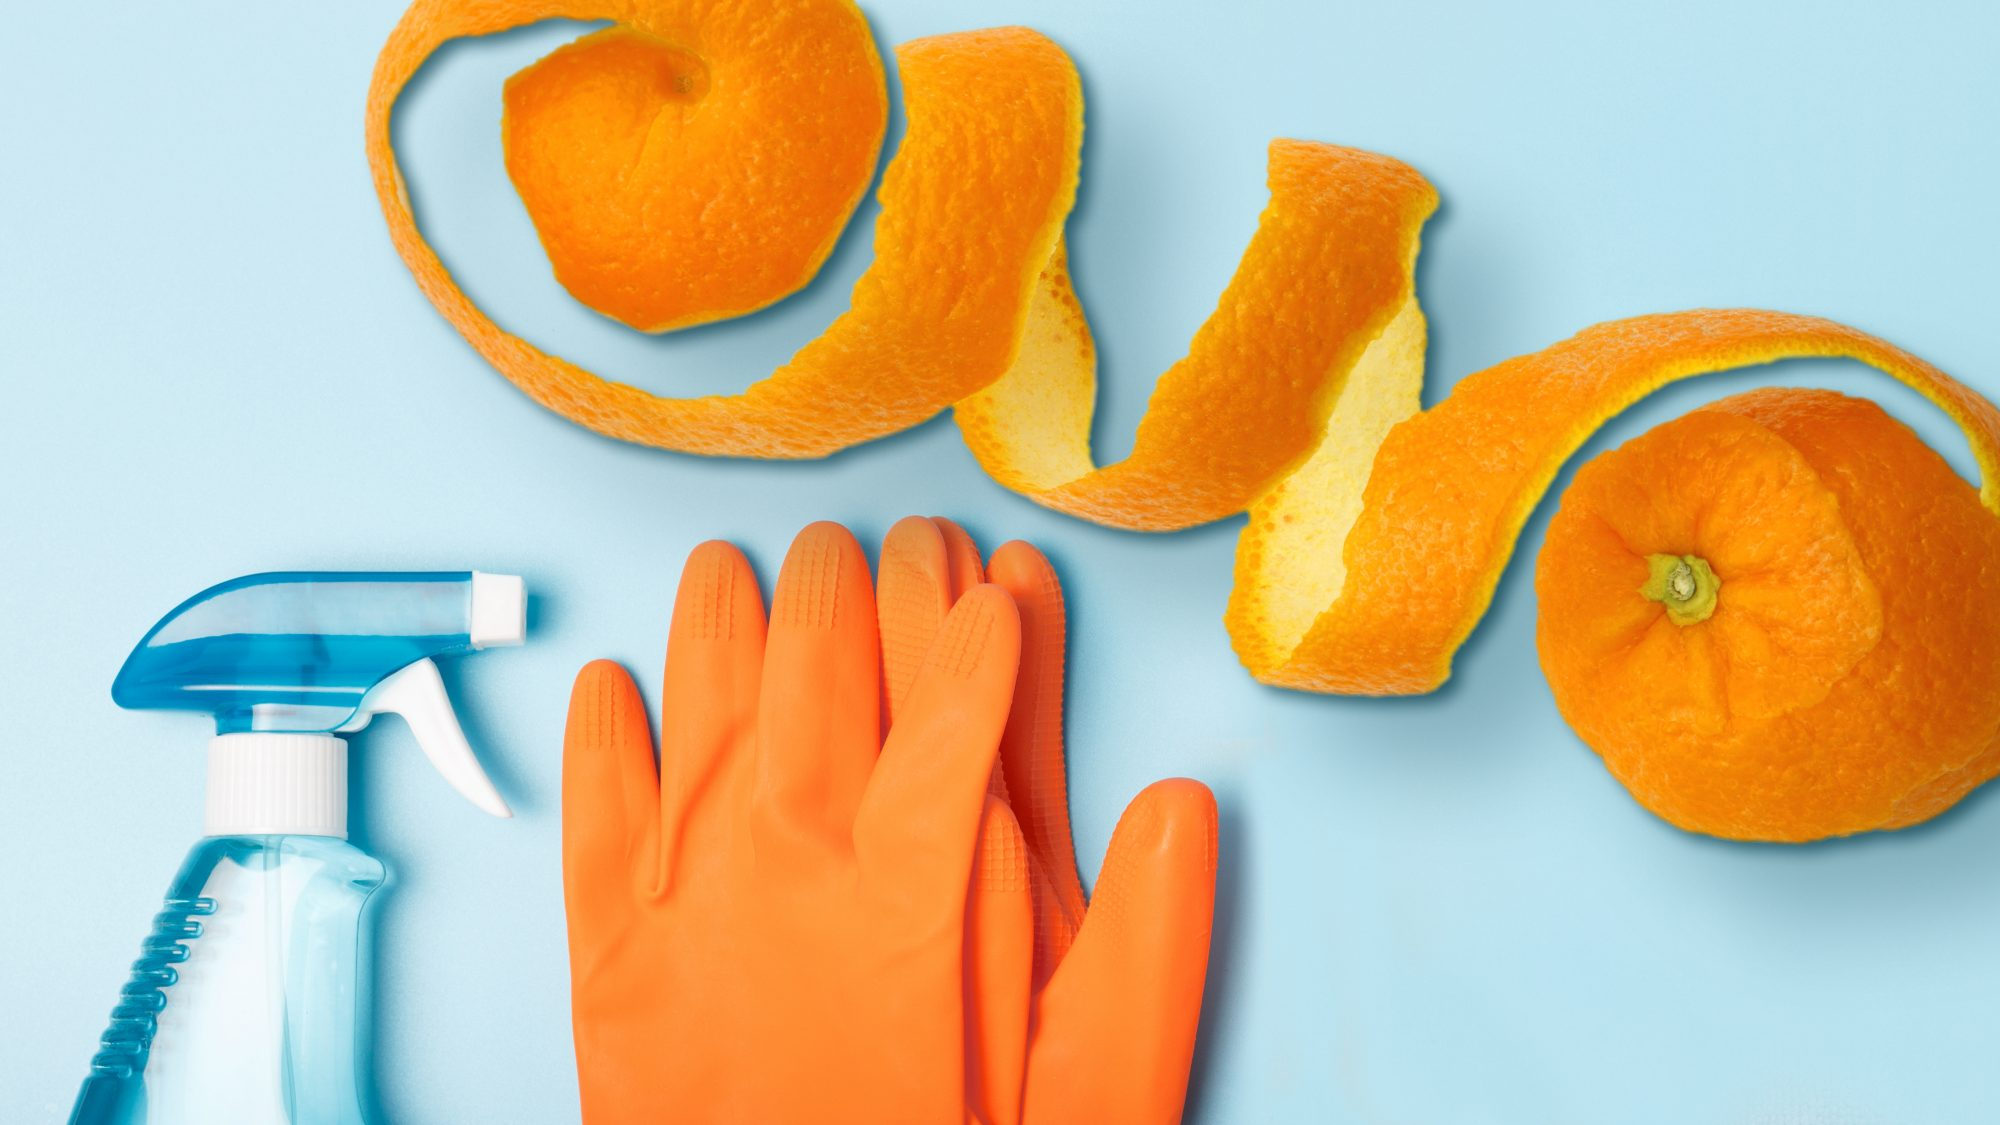 How to Make Orange Peel Cleaning Spray, orange peels and gloves